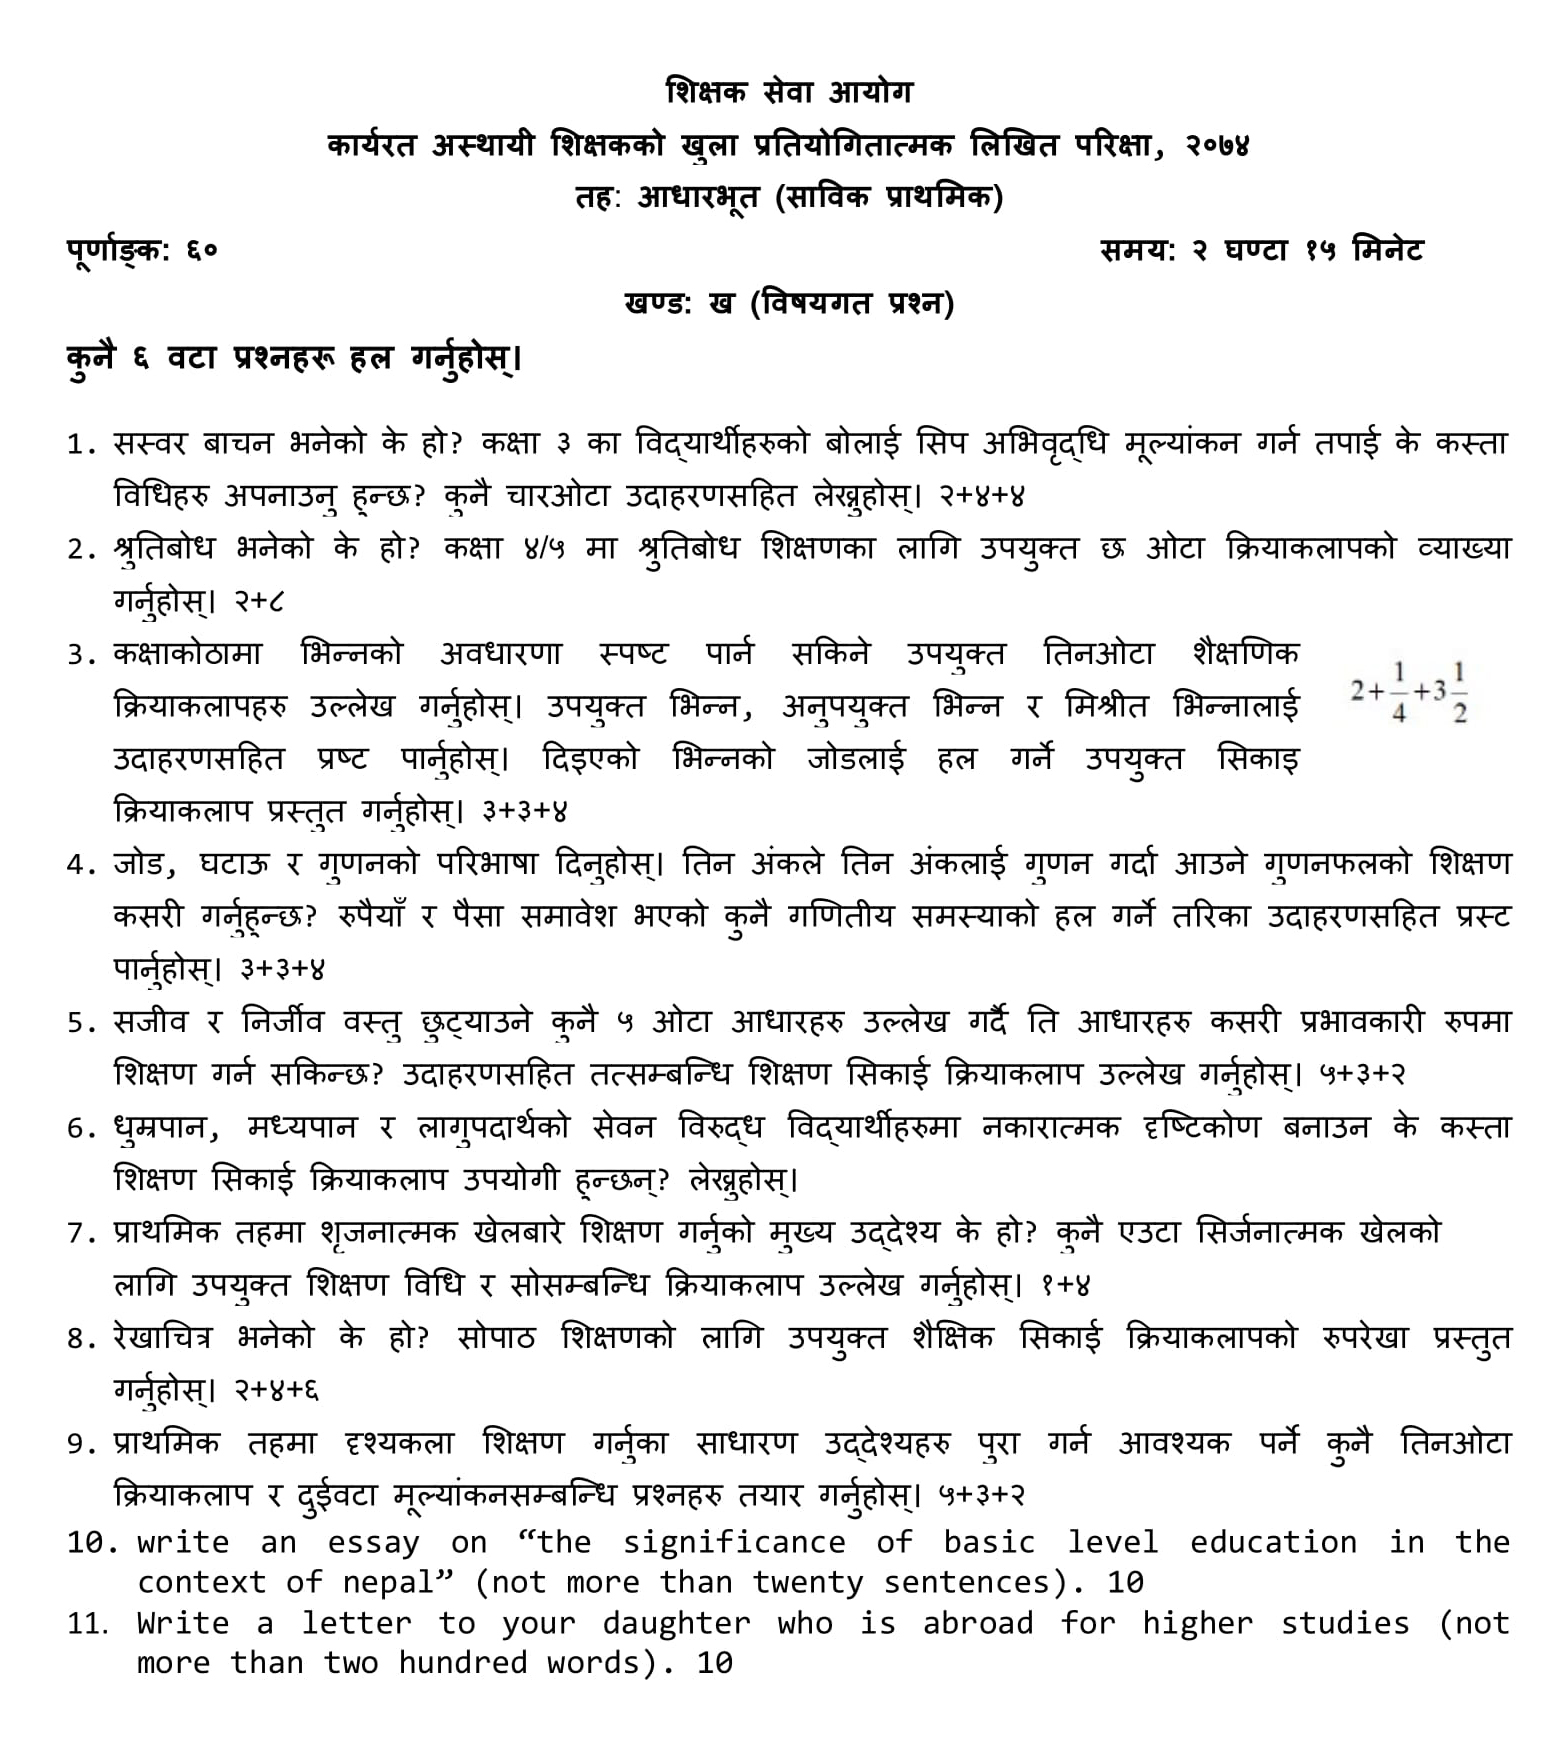 Online TSC Nepal Course Meanwhile in case you have any disorder about the TSC Nepal course and substance you can inbox your worry to us with the objective that we can deal with your worry as fast as time grants. Finally we should need to express outright best of fortunes in light of a legitimate concern for Sajilo Sanjal family for your achievement in the best in class teacher advantage commission Nepal exam.